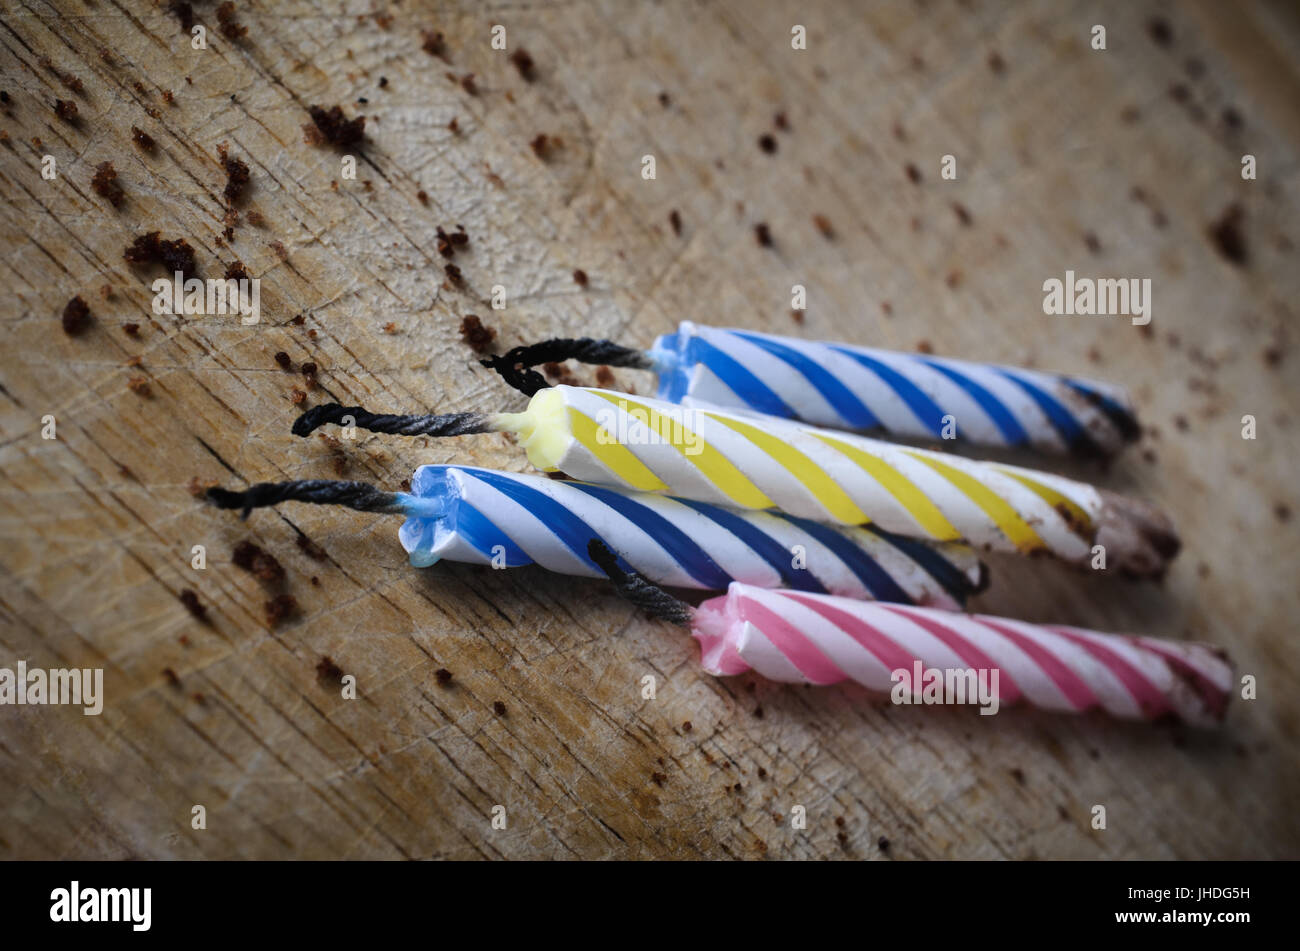 Close up of four used, striped  birthday cake candles, burned out and lying grouped amongst chocolate cake crumbs - Stock Image